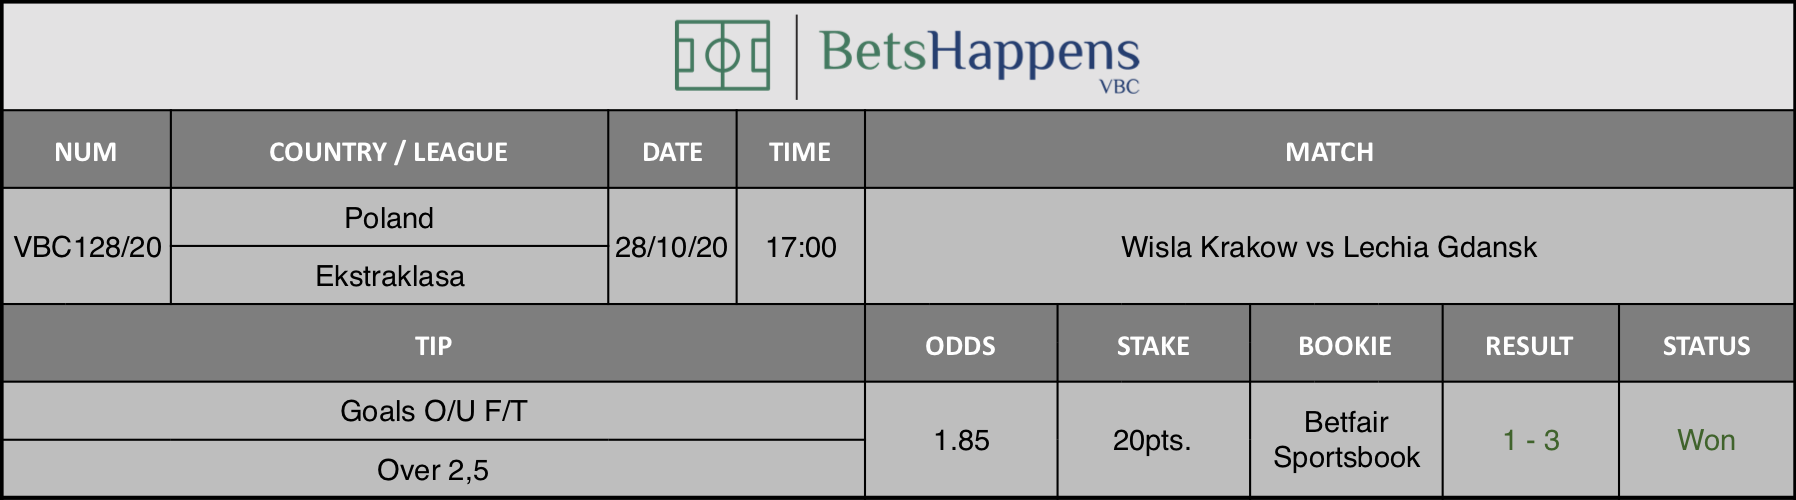 Results of our tip for the Wisla Krakow vs Lechia Gdansk match where Goals O/U F/T Over 2,5 is recommended.